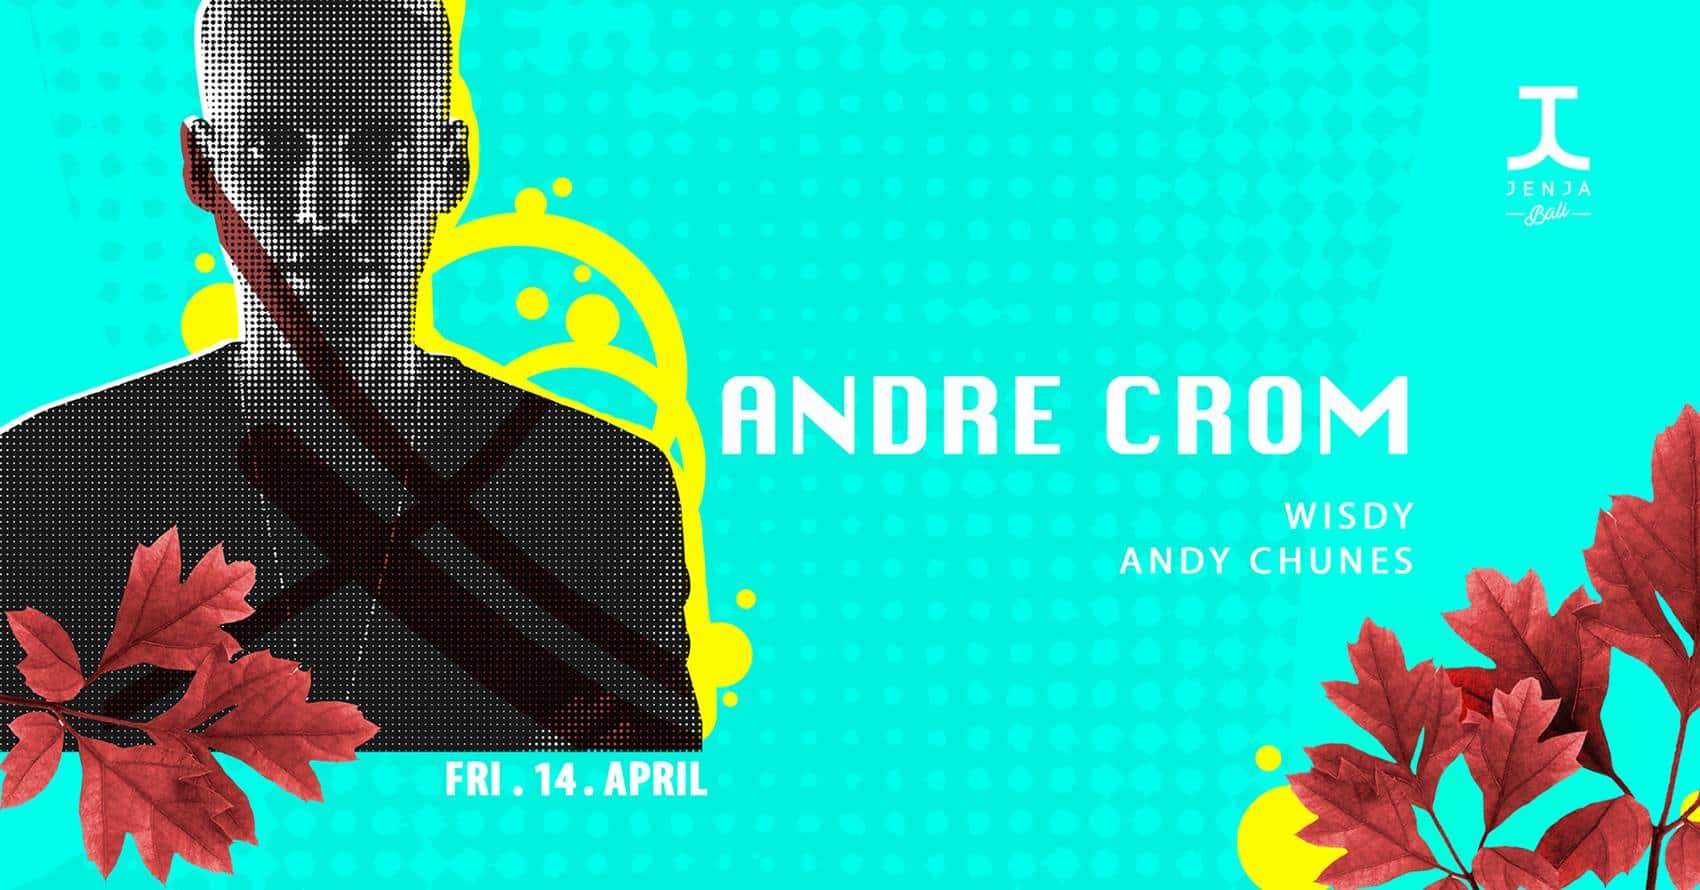 ANDRE CROM